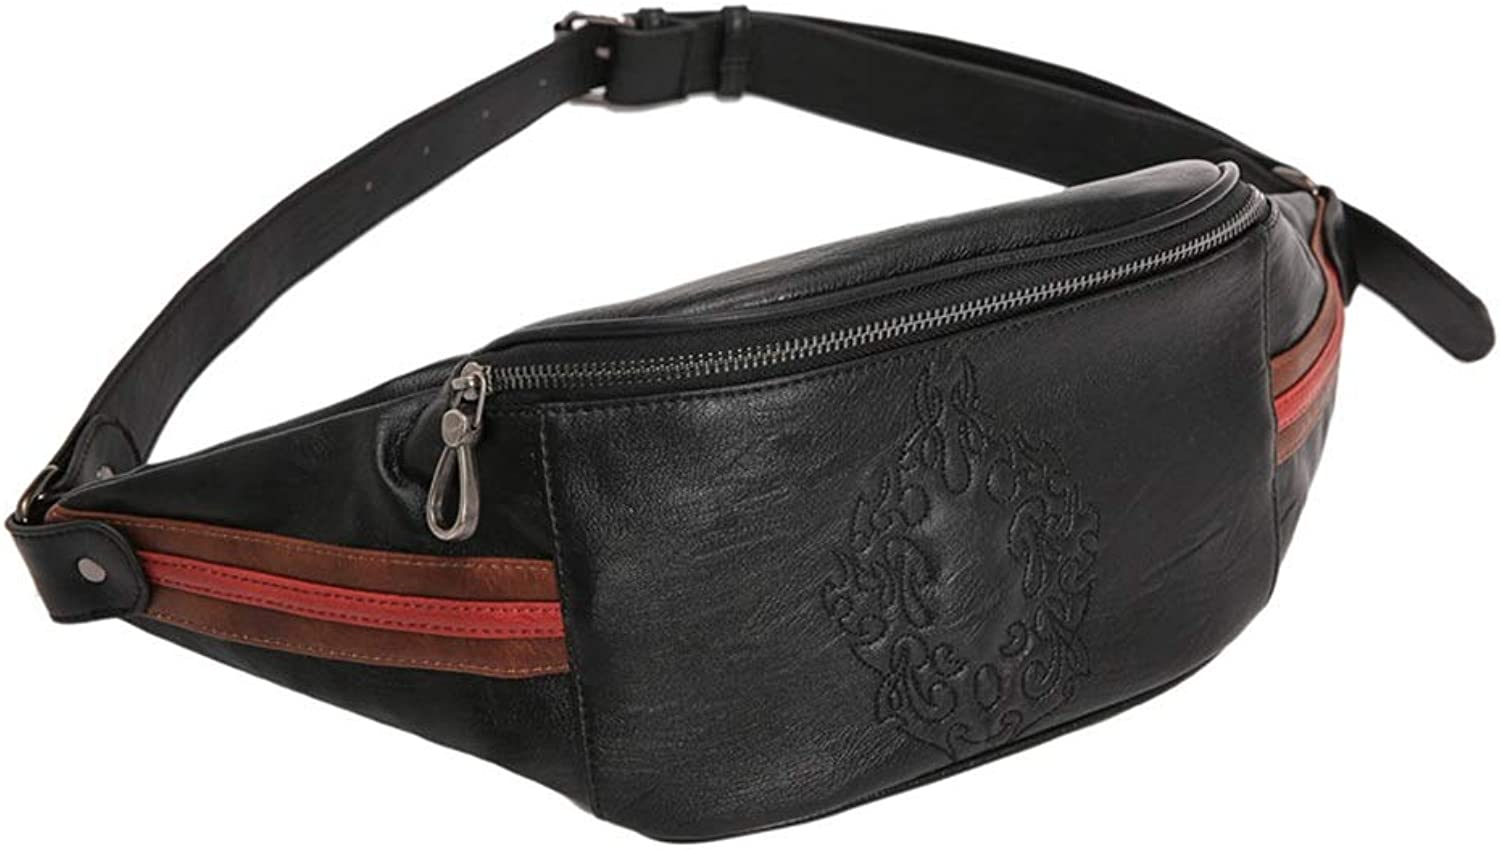 Outdoor Sports Waist Pack Unisex Unisex Black Leather Waist Bag Messenger Fanny Pack Bum Bag Waistpack Motorcycle Riding Cycling Travel Outdoors Sports for Running Workout Hiking Fitness Cycling